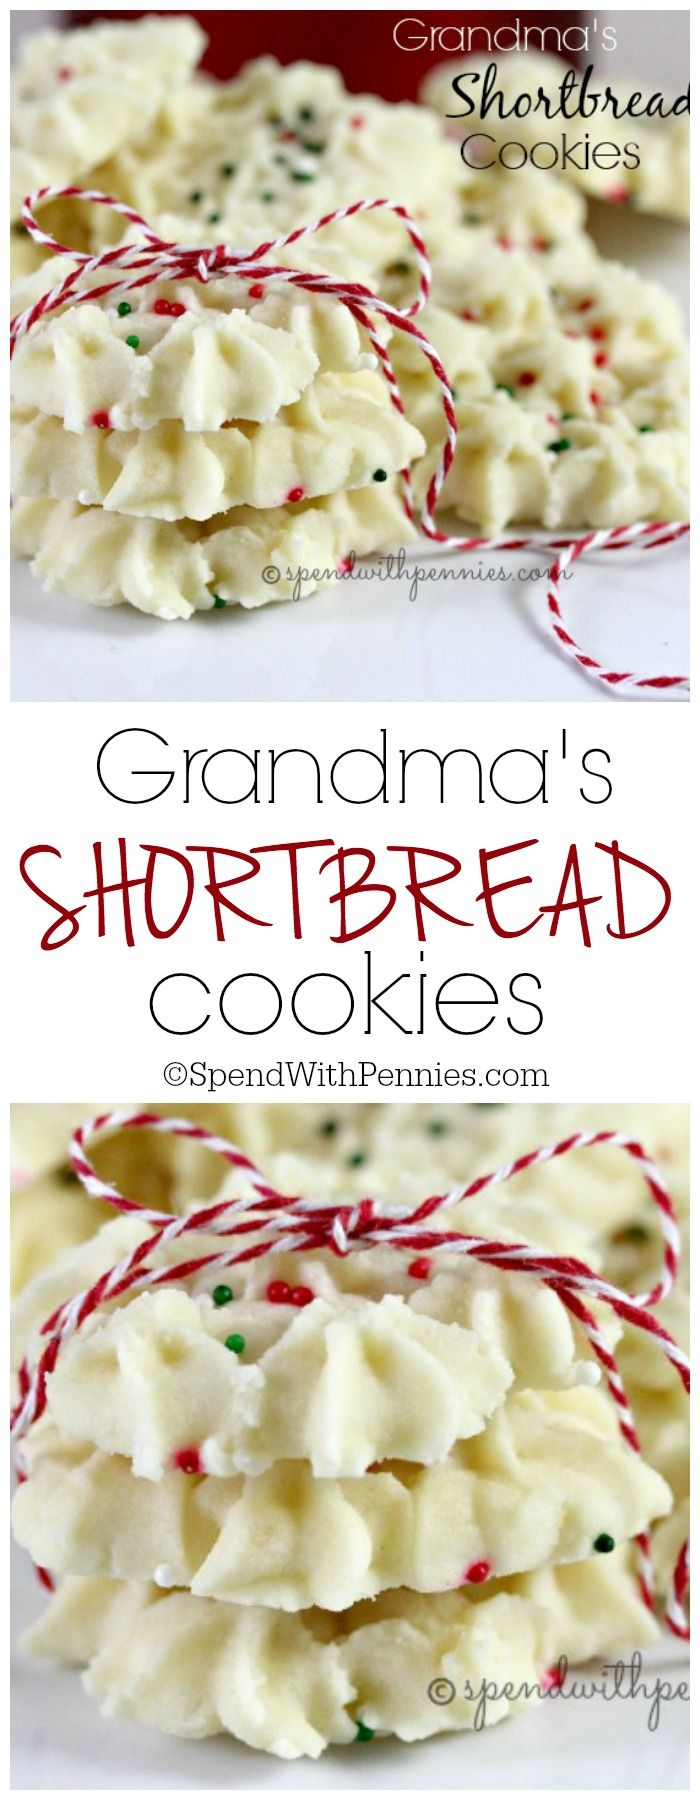 Grandma's Shortbread Cookies! This has been my favorite Christmas Cookie since I was a little girl! <3 Buttery, melt in your mouth and delicious!